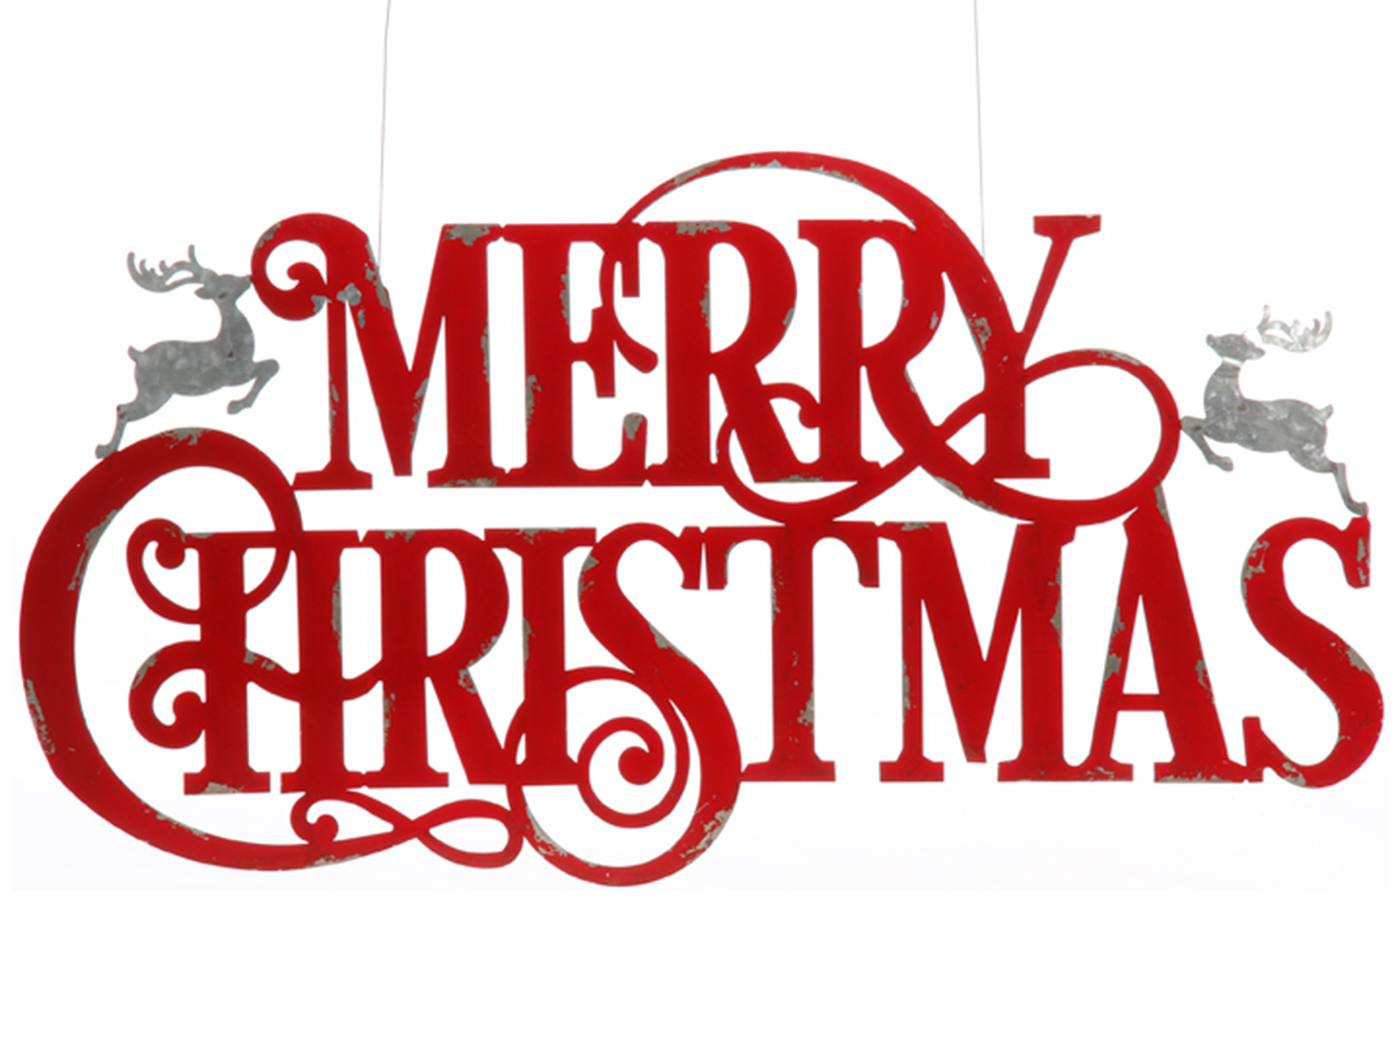 "Red and Grey Metal Merry Christmas Wall Sign 36""W x 20""H"